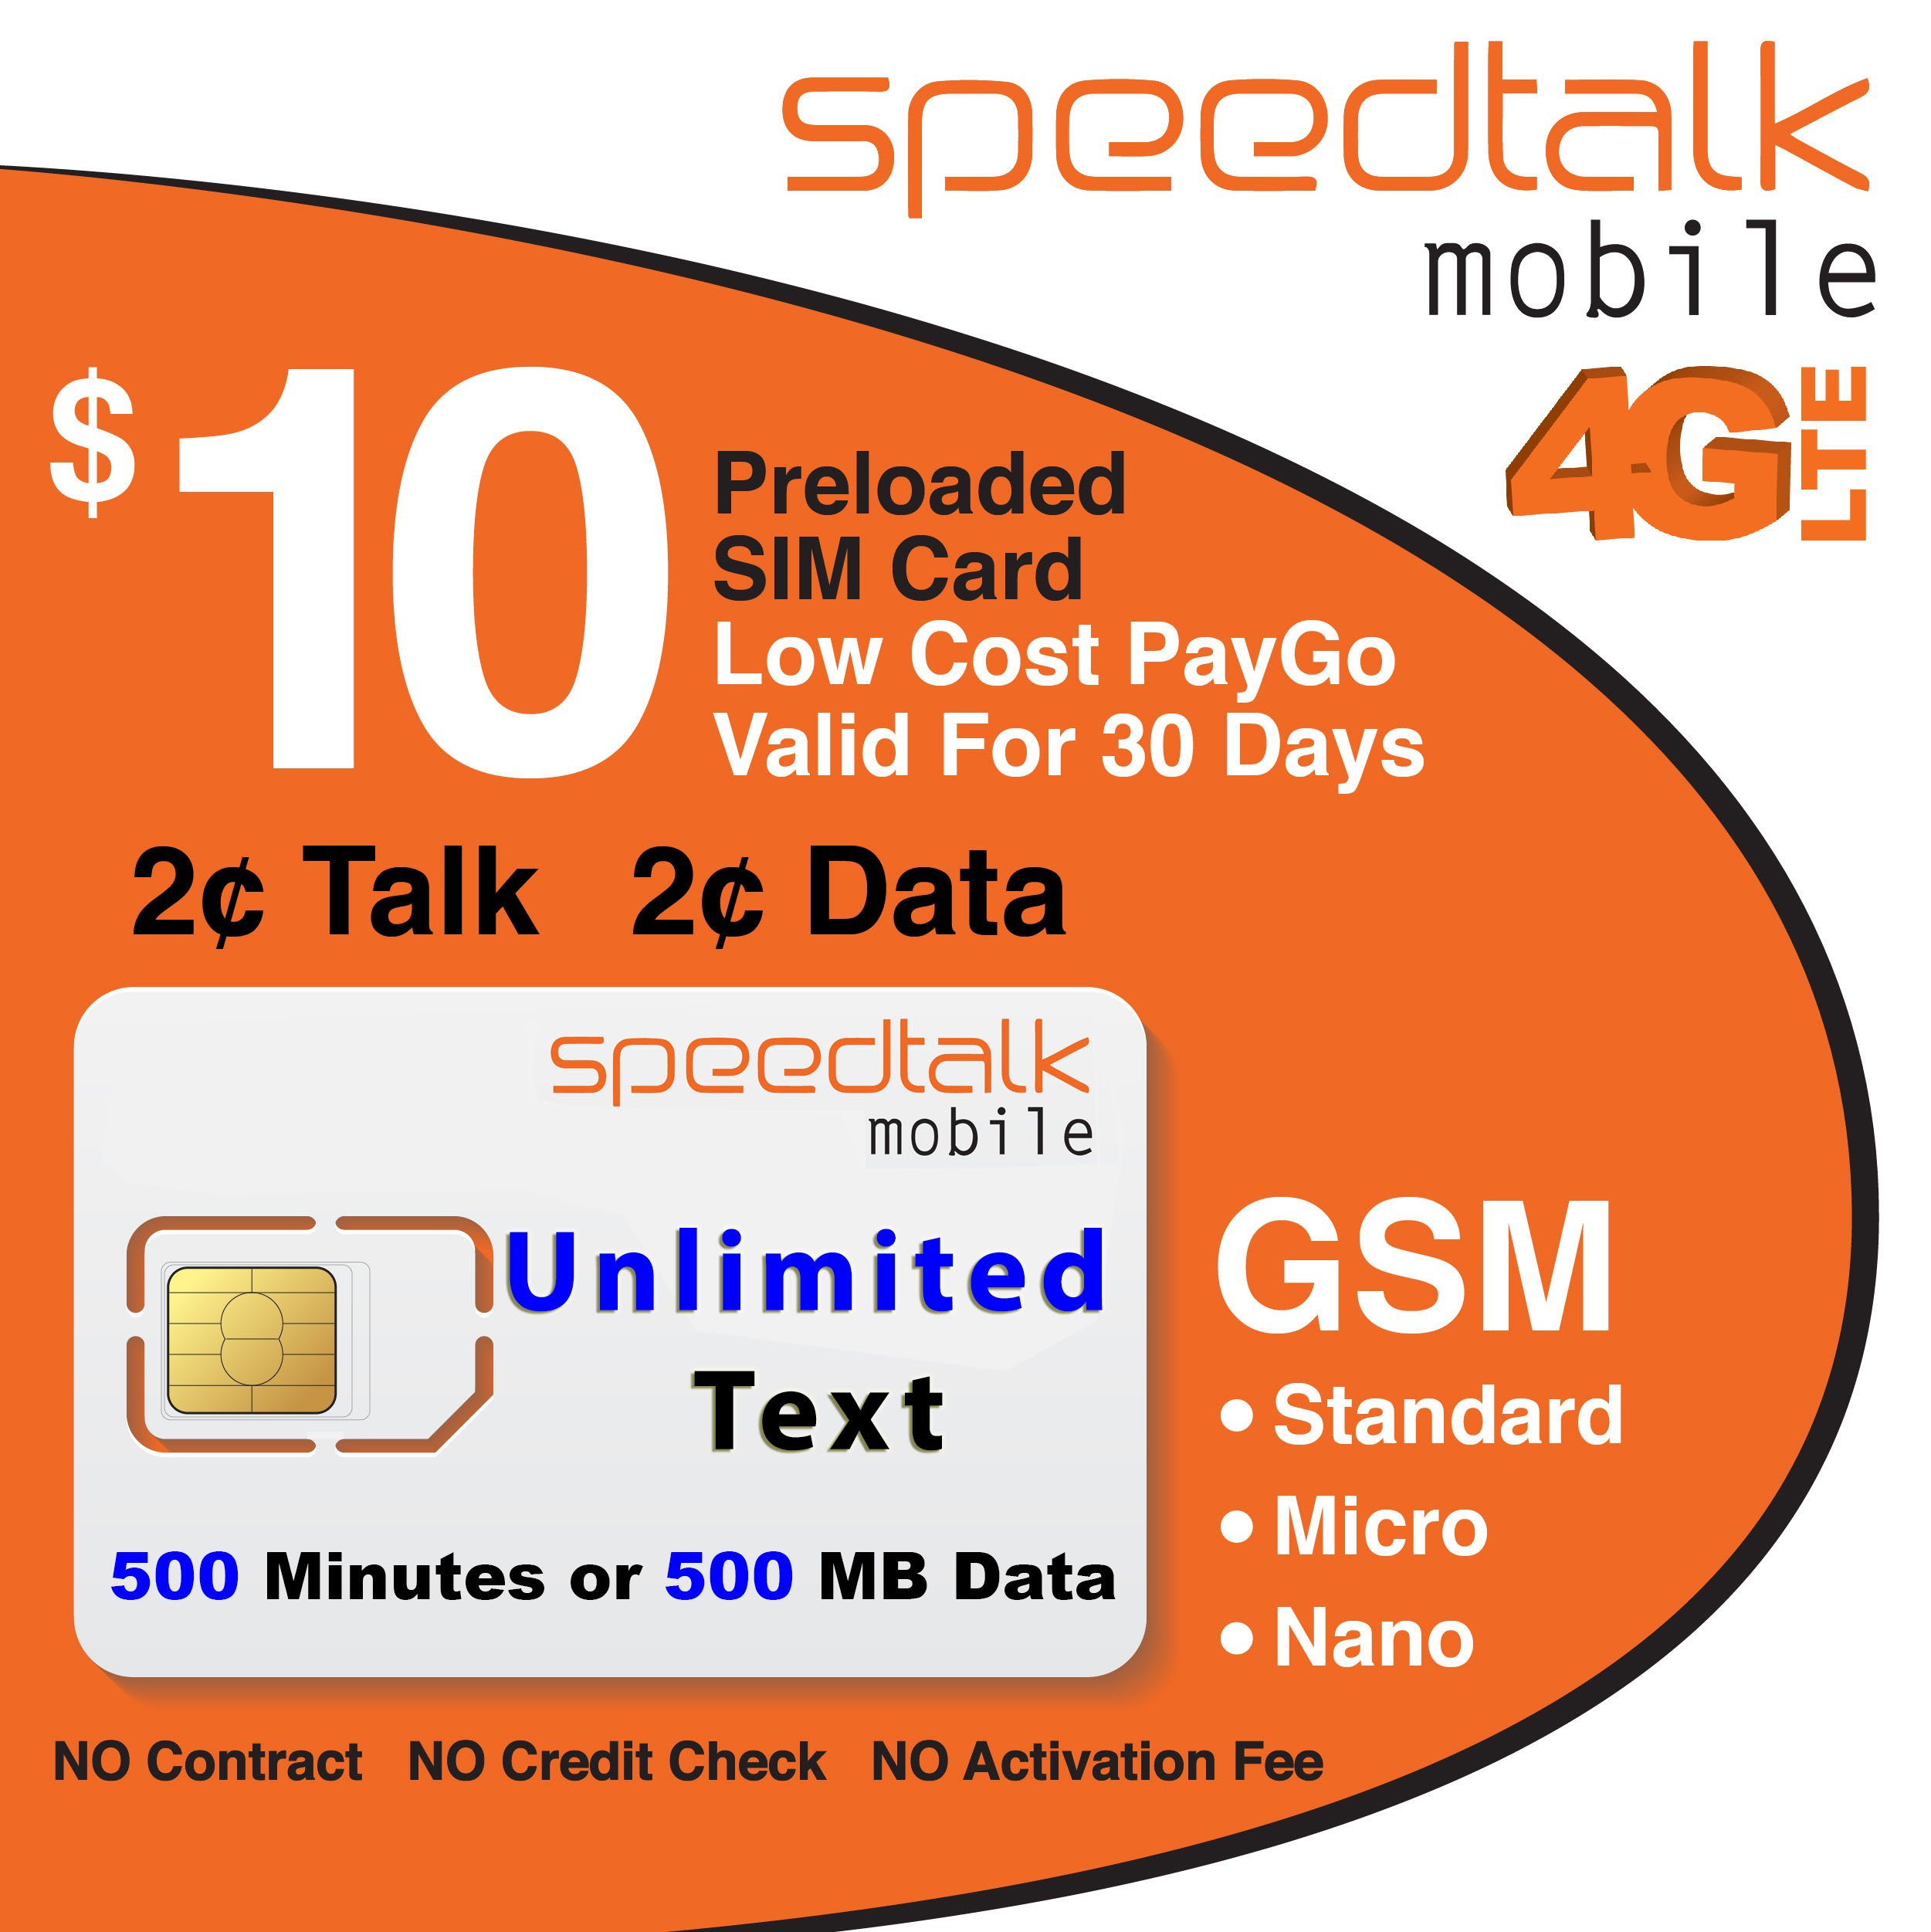 $10 GSM SIM Card Unlimited Text 2 Cents Per Minute 2 Cents Per MB Data 30-Day Wireless Service by SpeedTalk Mobile